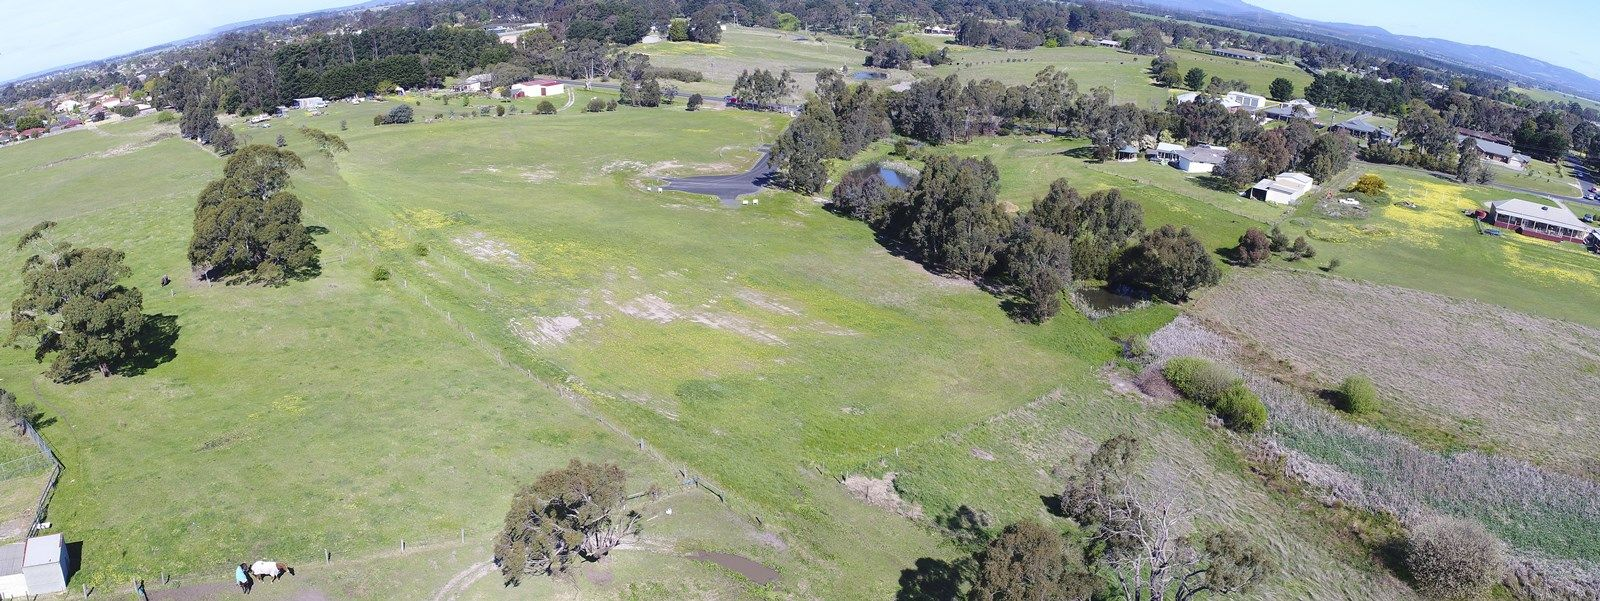 Lot 3 Margie's Place, Traralgon VIC 3844, Image 2